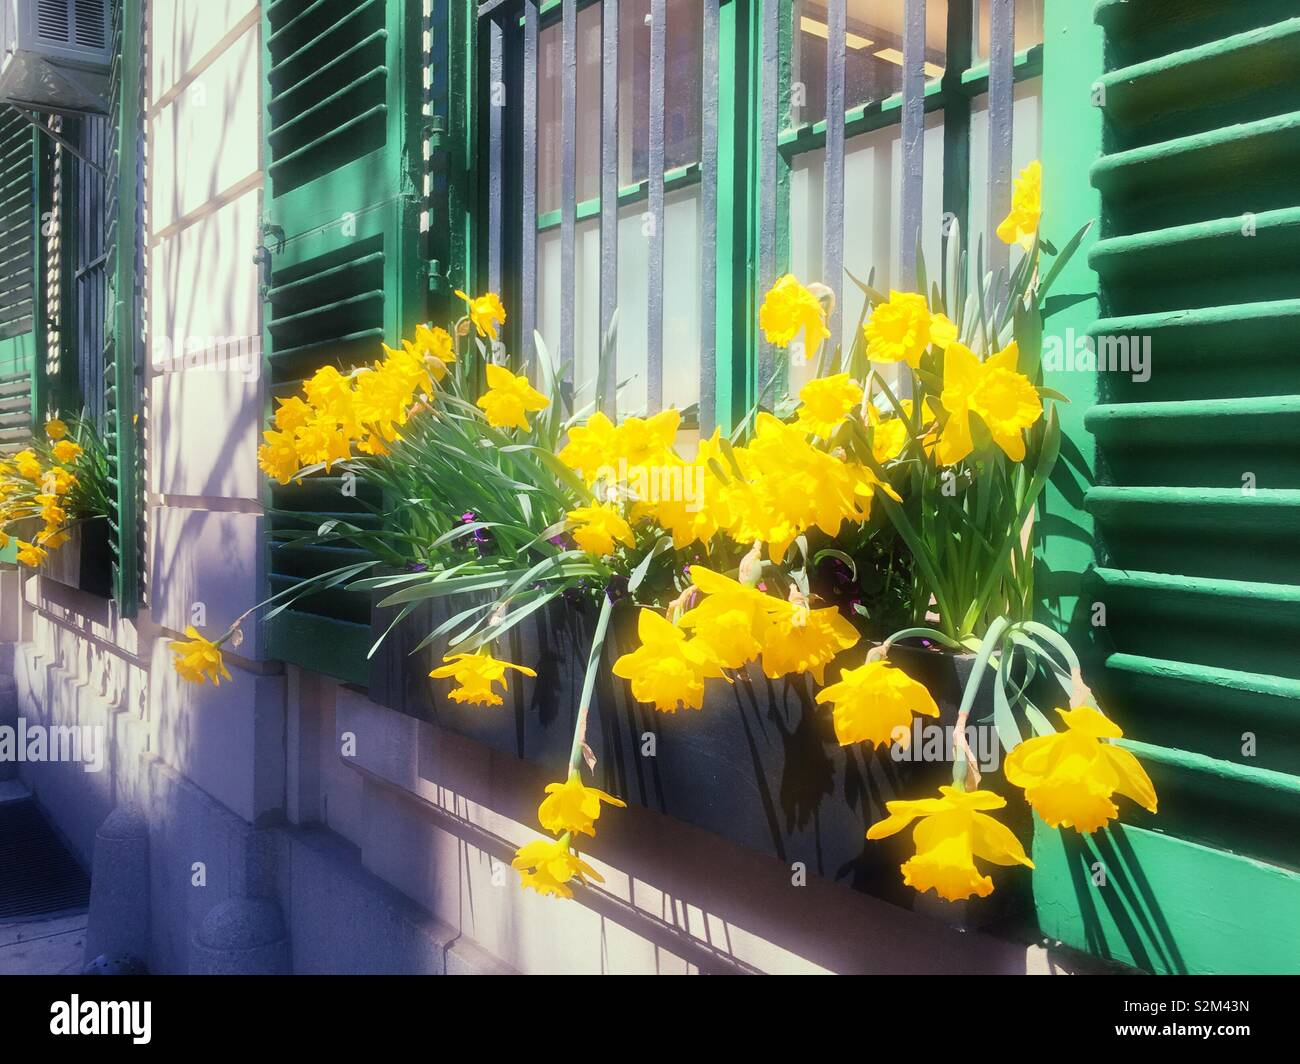 Springtime scene with blooming daffodils in an apartment building window box with green shutters, USA - Stock Image